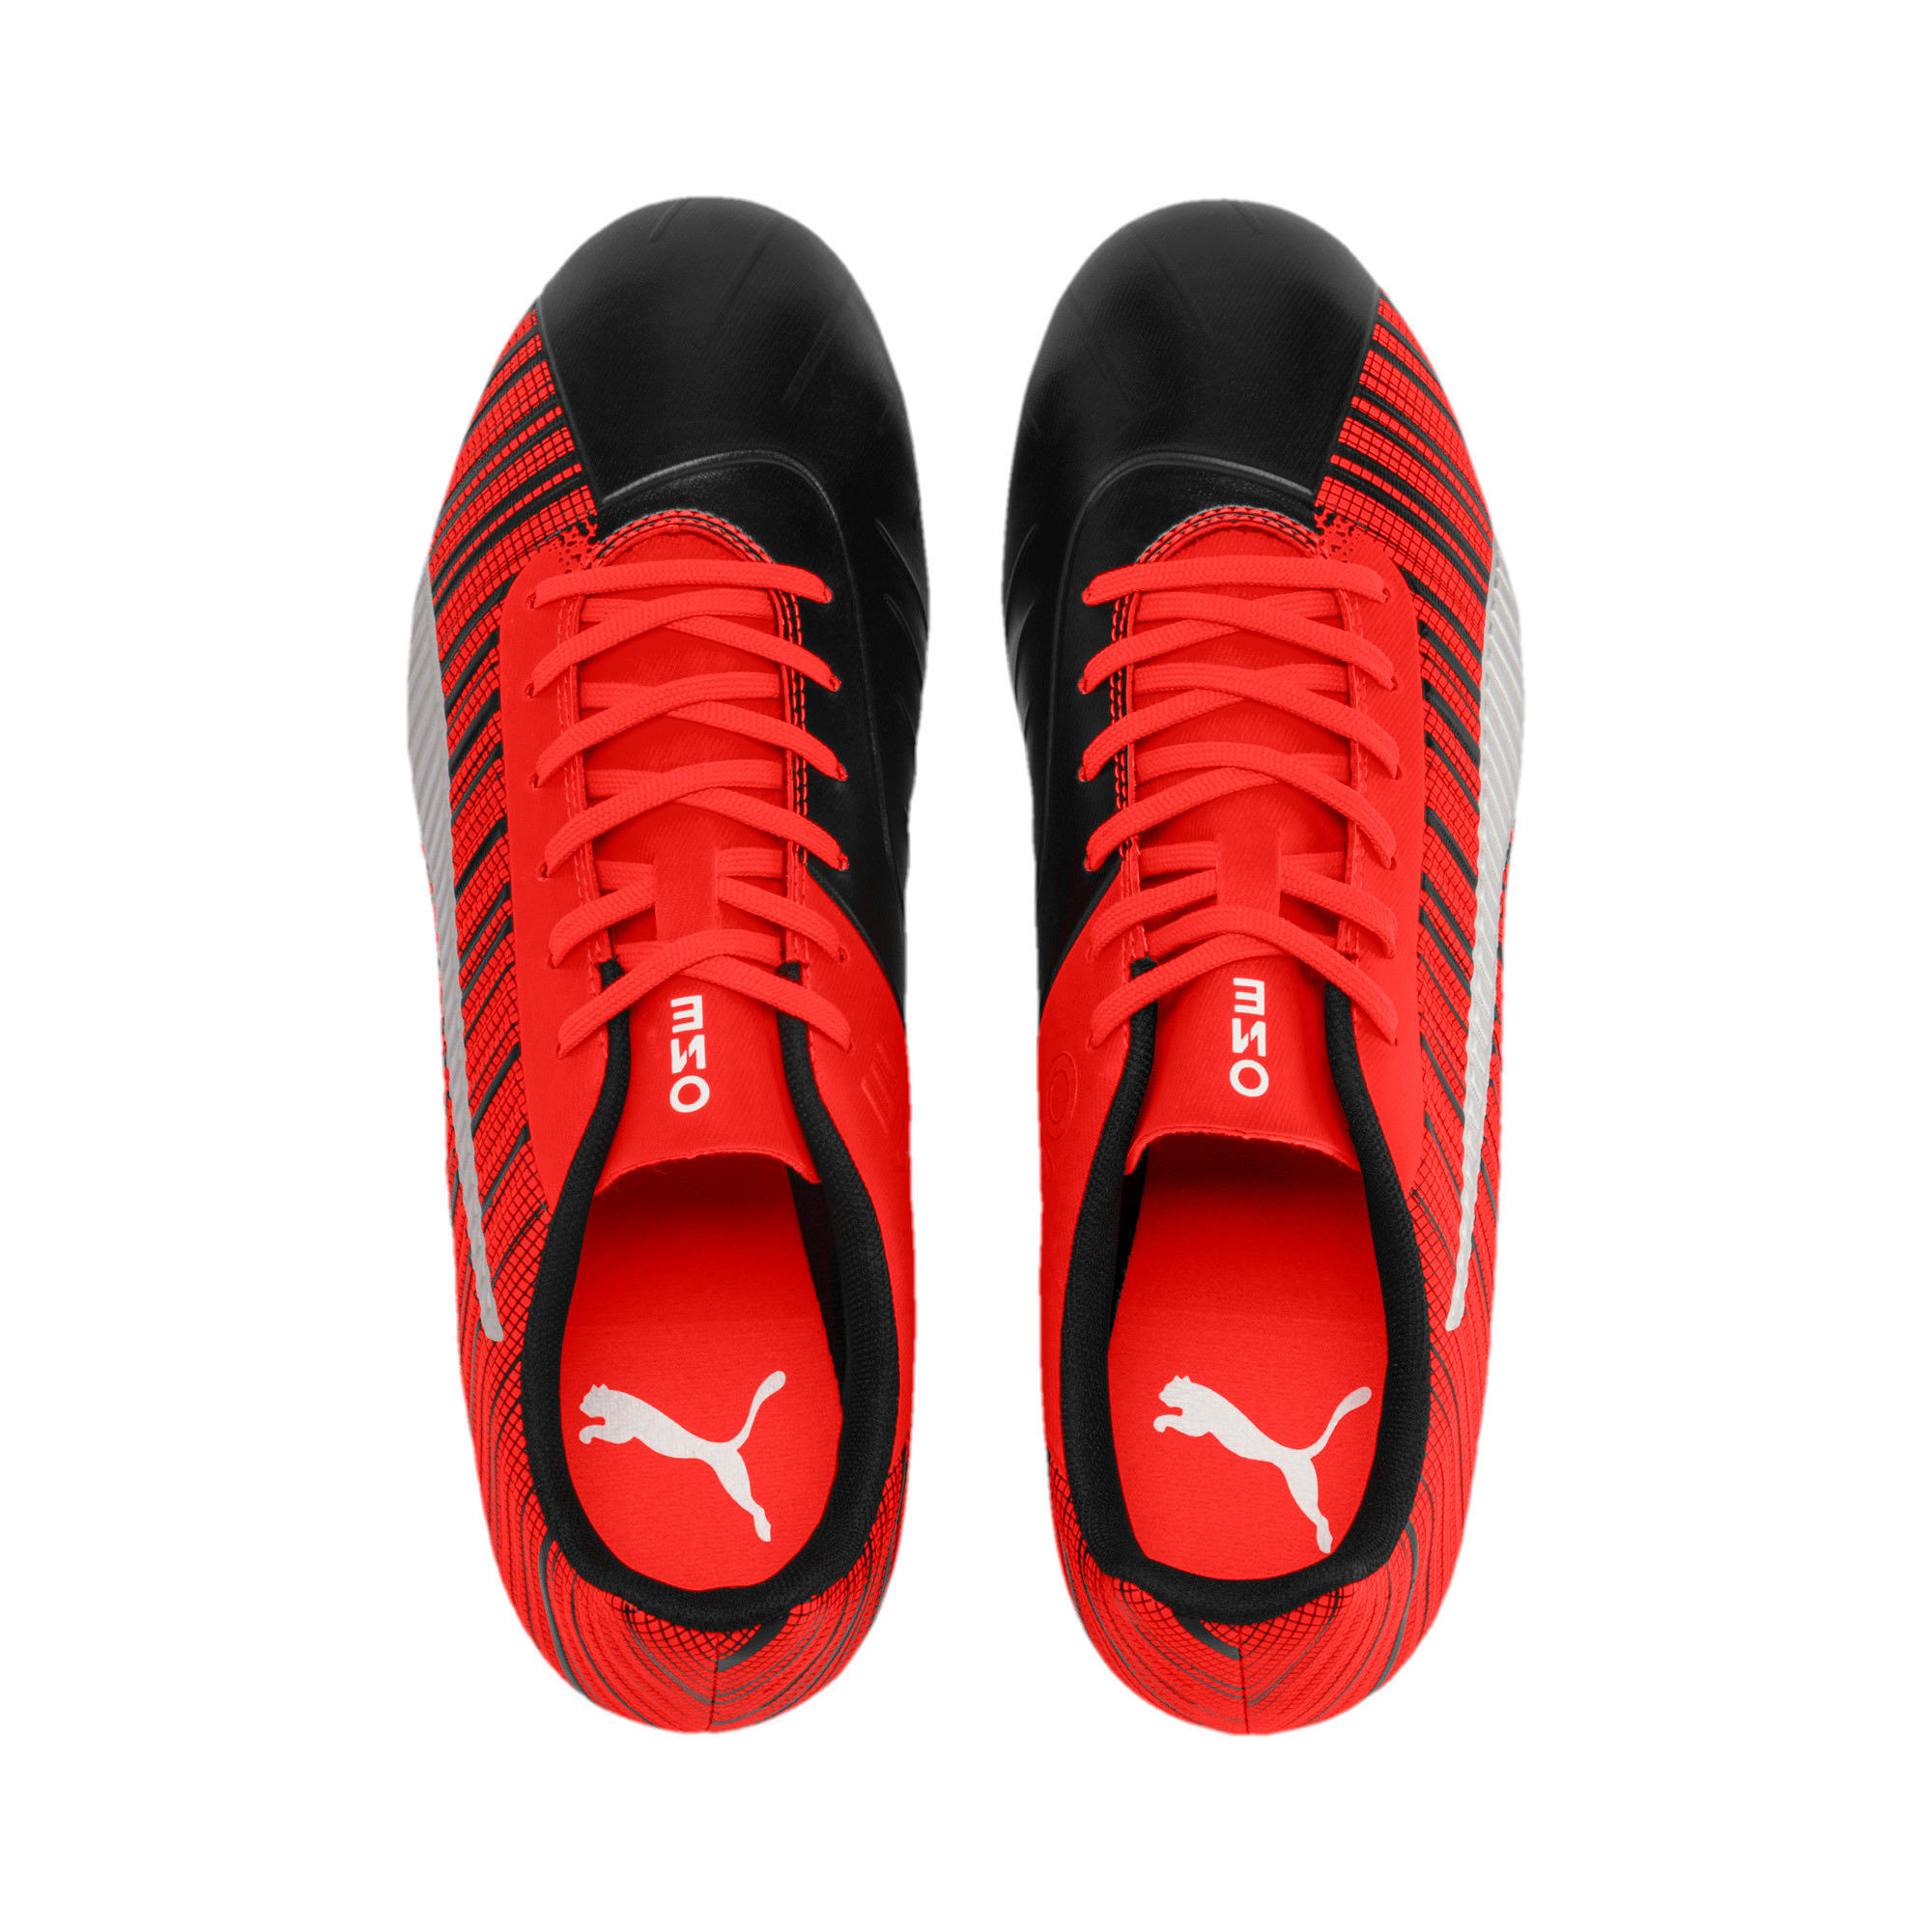 Thumbnail 7 of PUMA ONE 5.4 FG/AG Men's Soccer Cleats, Black-Nrgy Red-Aged Silver, medium